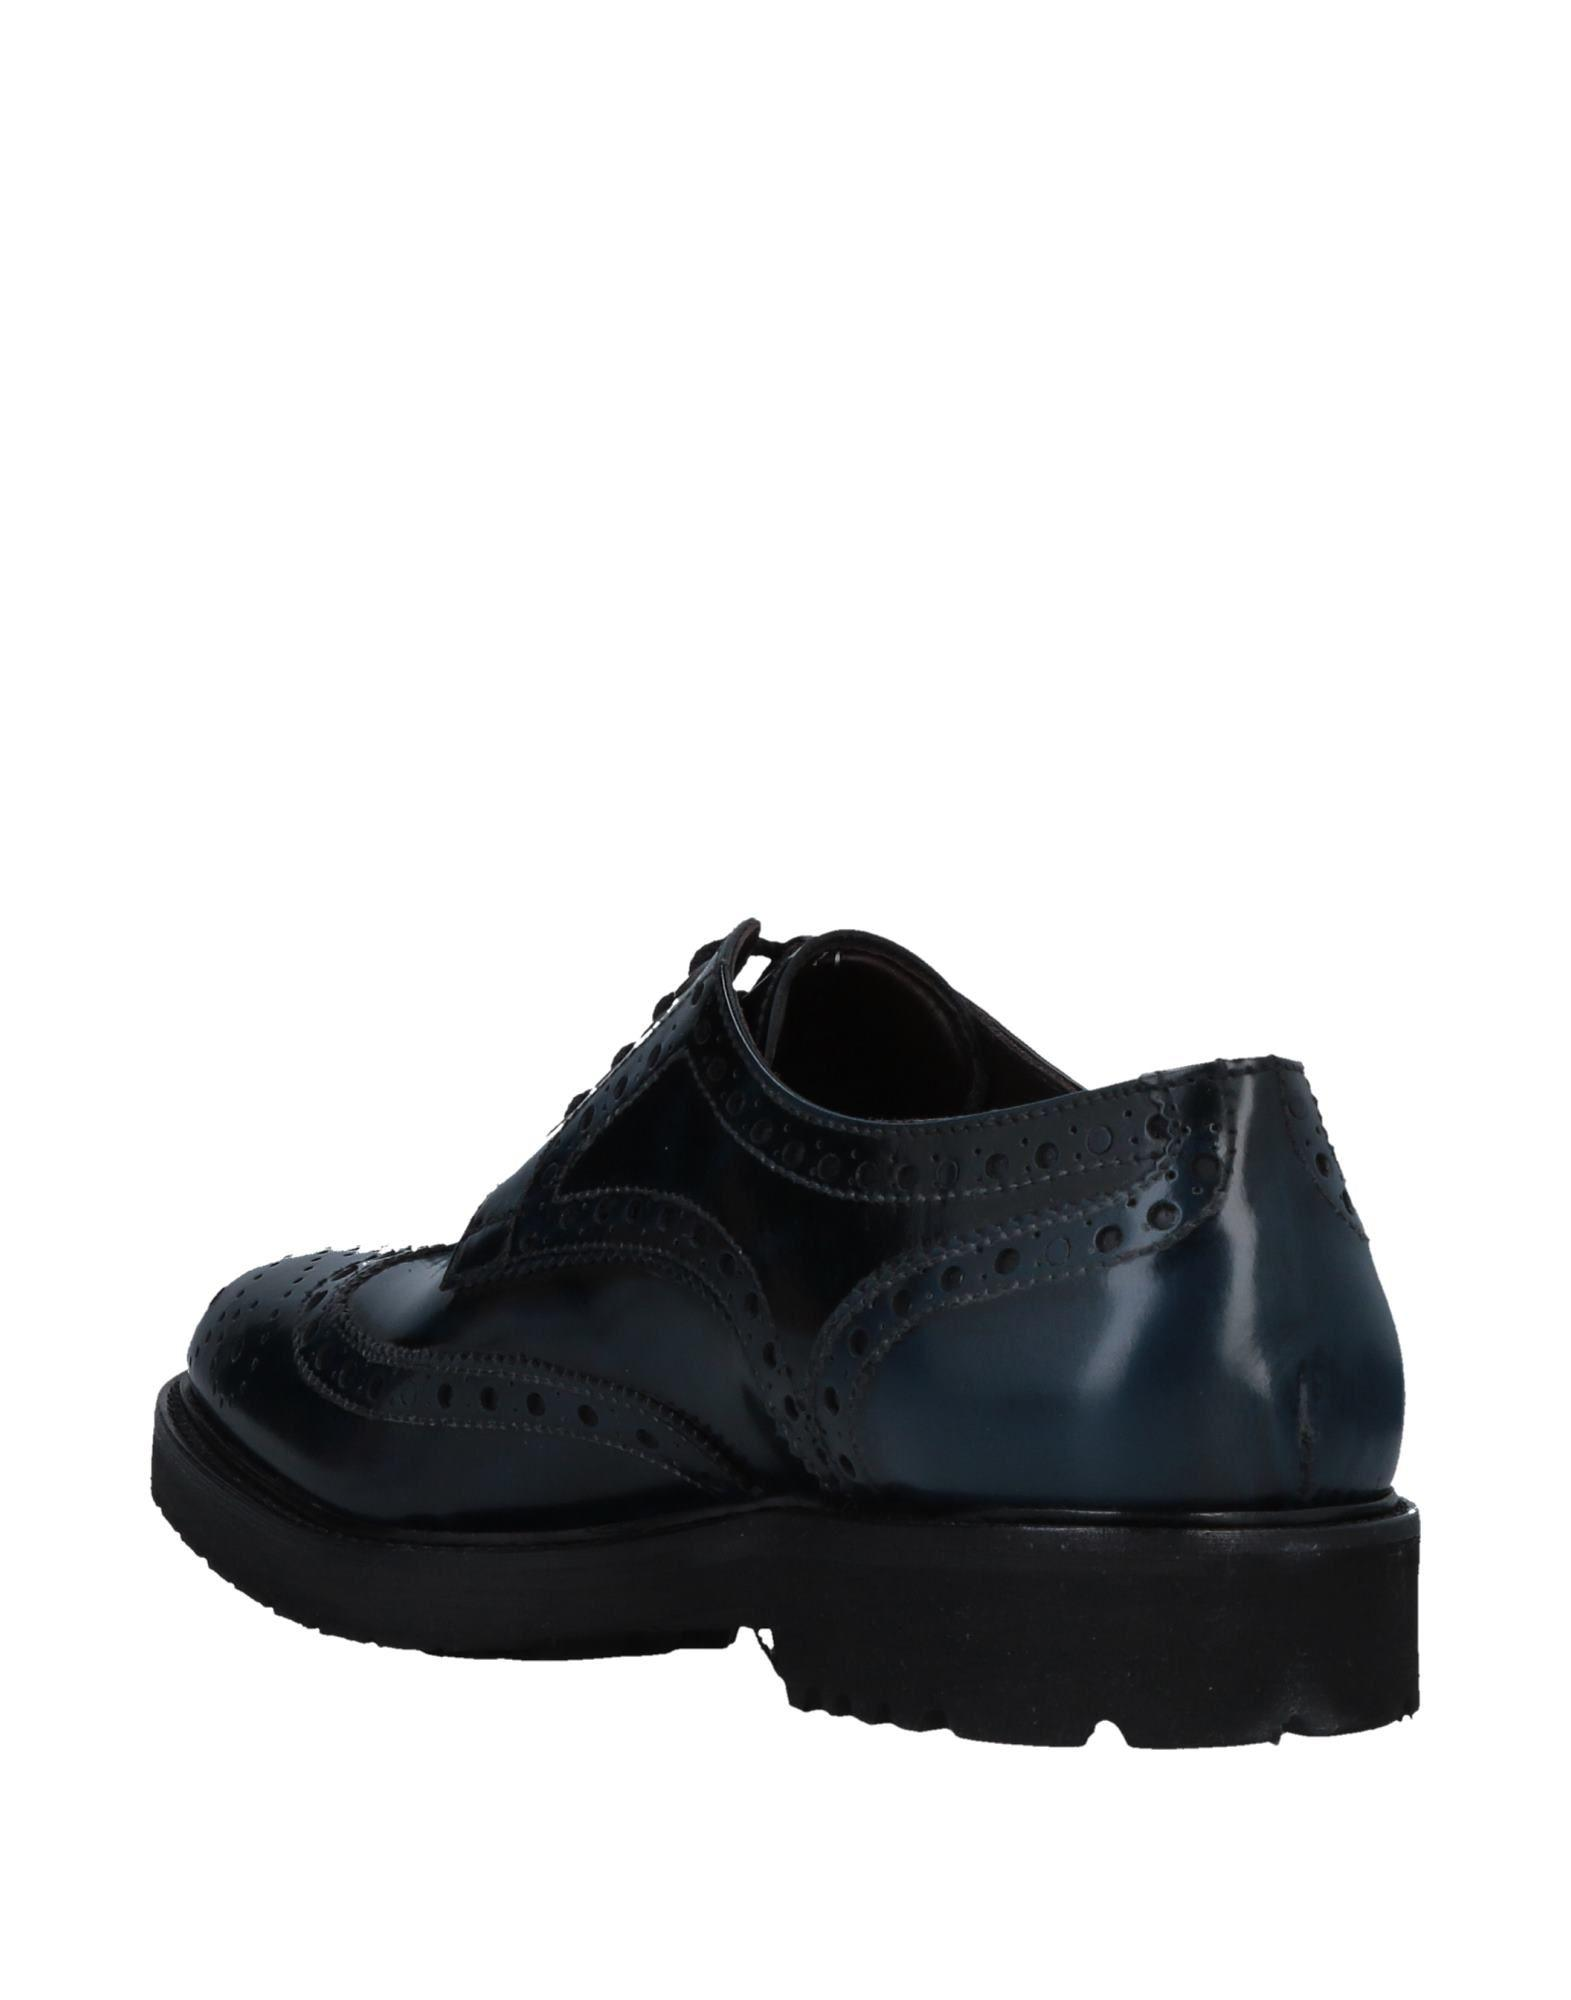 915f554a26 Lyst - Brian Dales Lace-up Shoe in Blue for Men